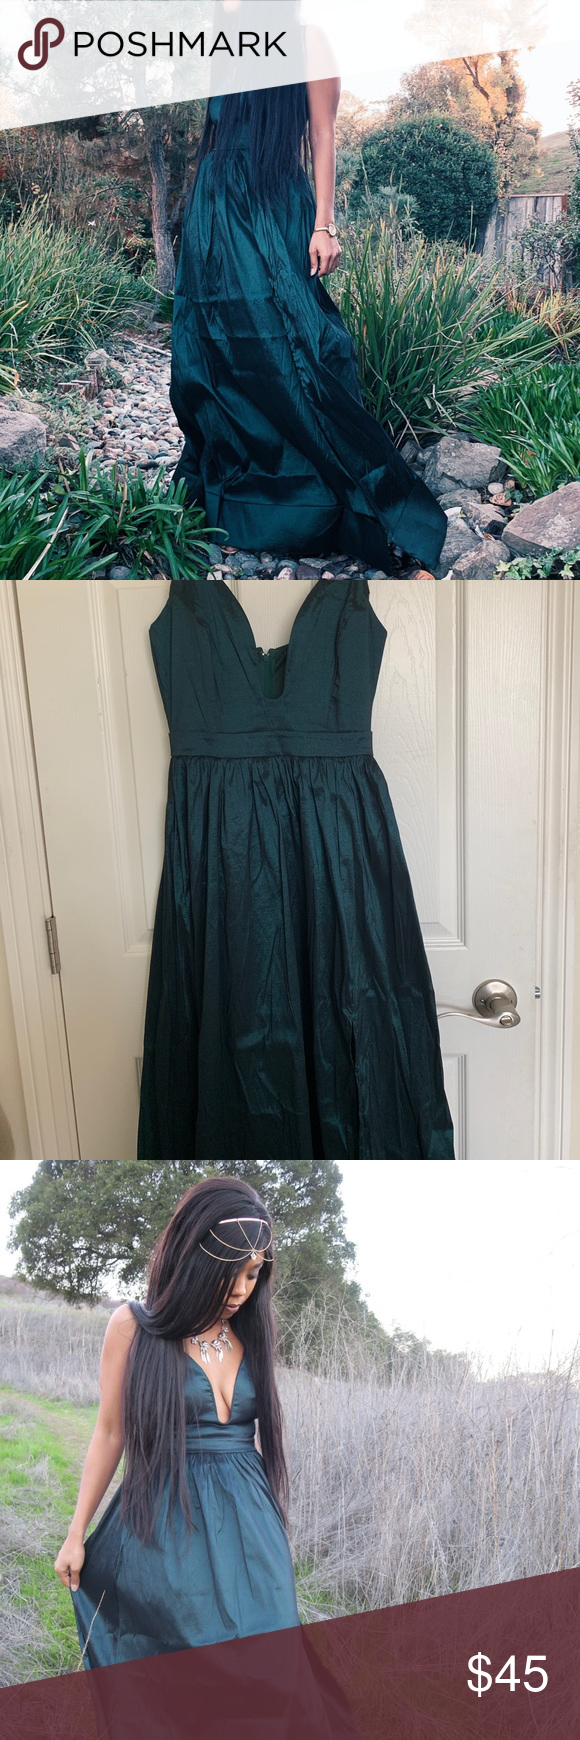 Elegant Long Dark Turquoise Dress In Size S Turquoise Dress Dresses Windsor Dresses